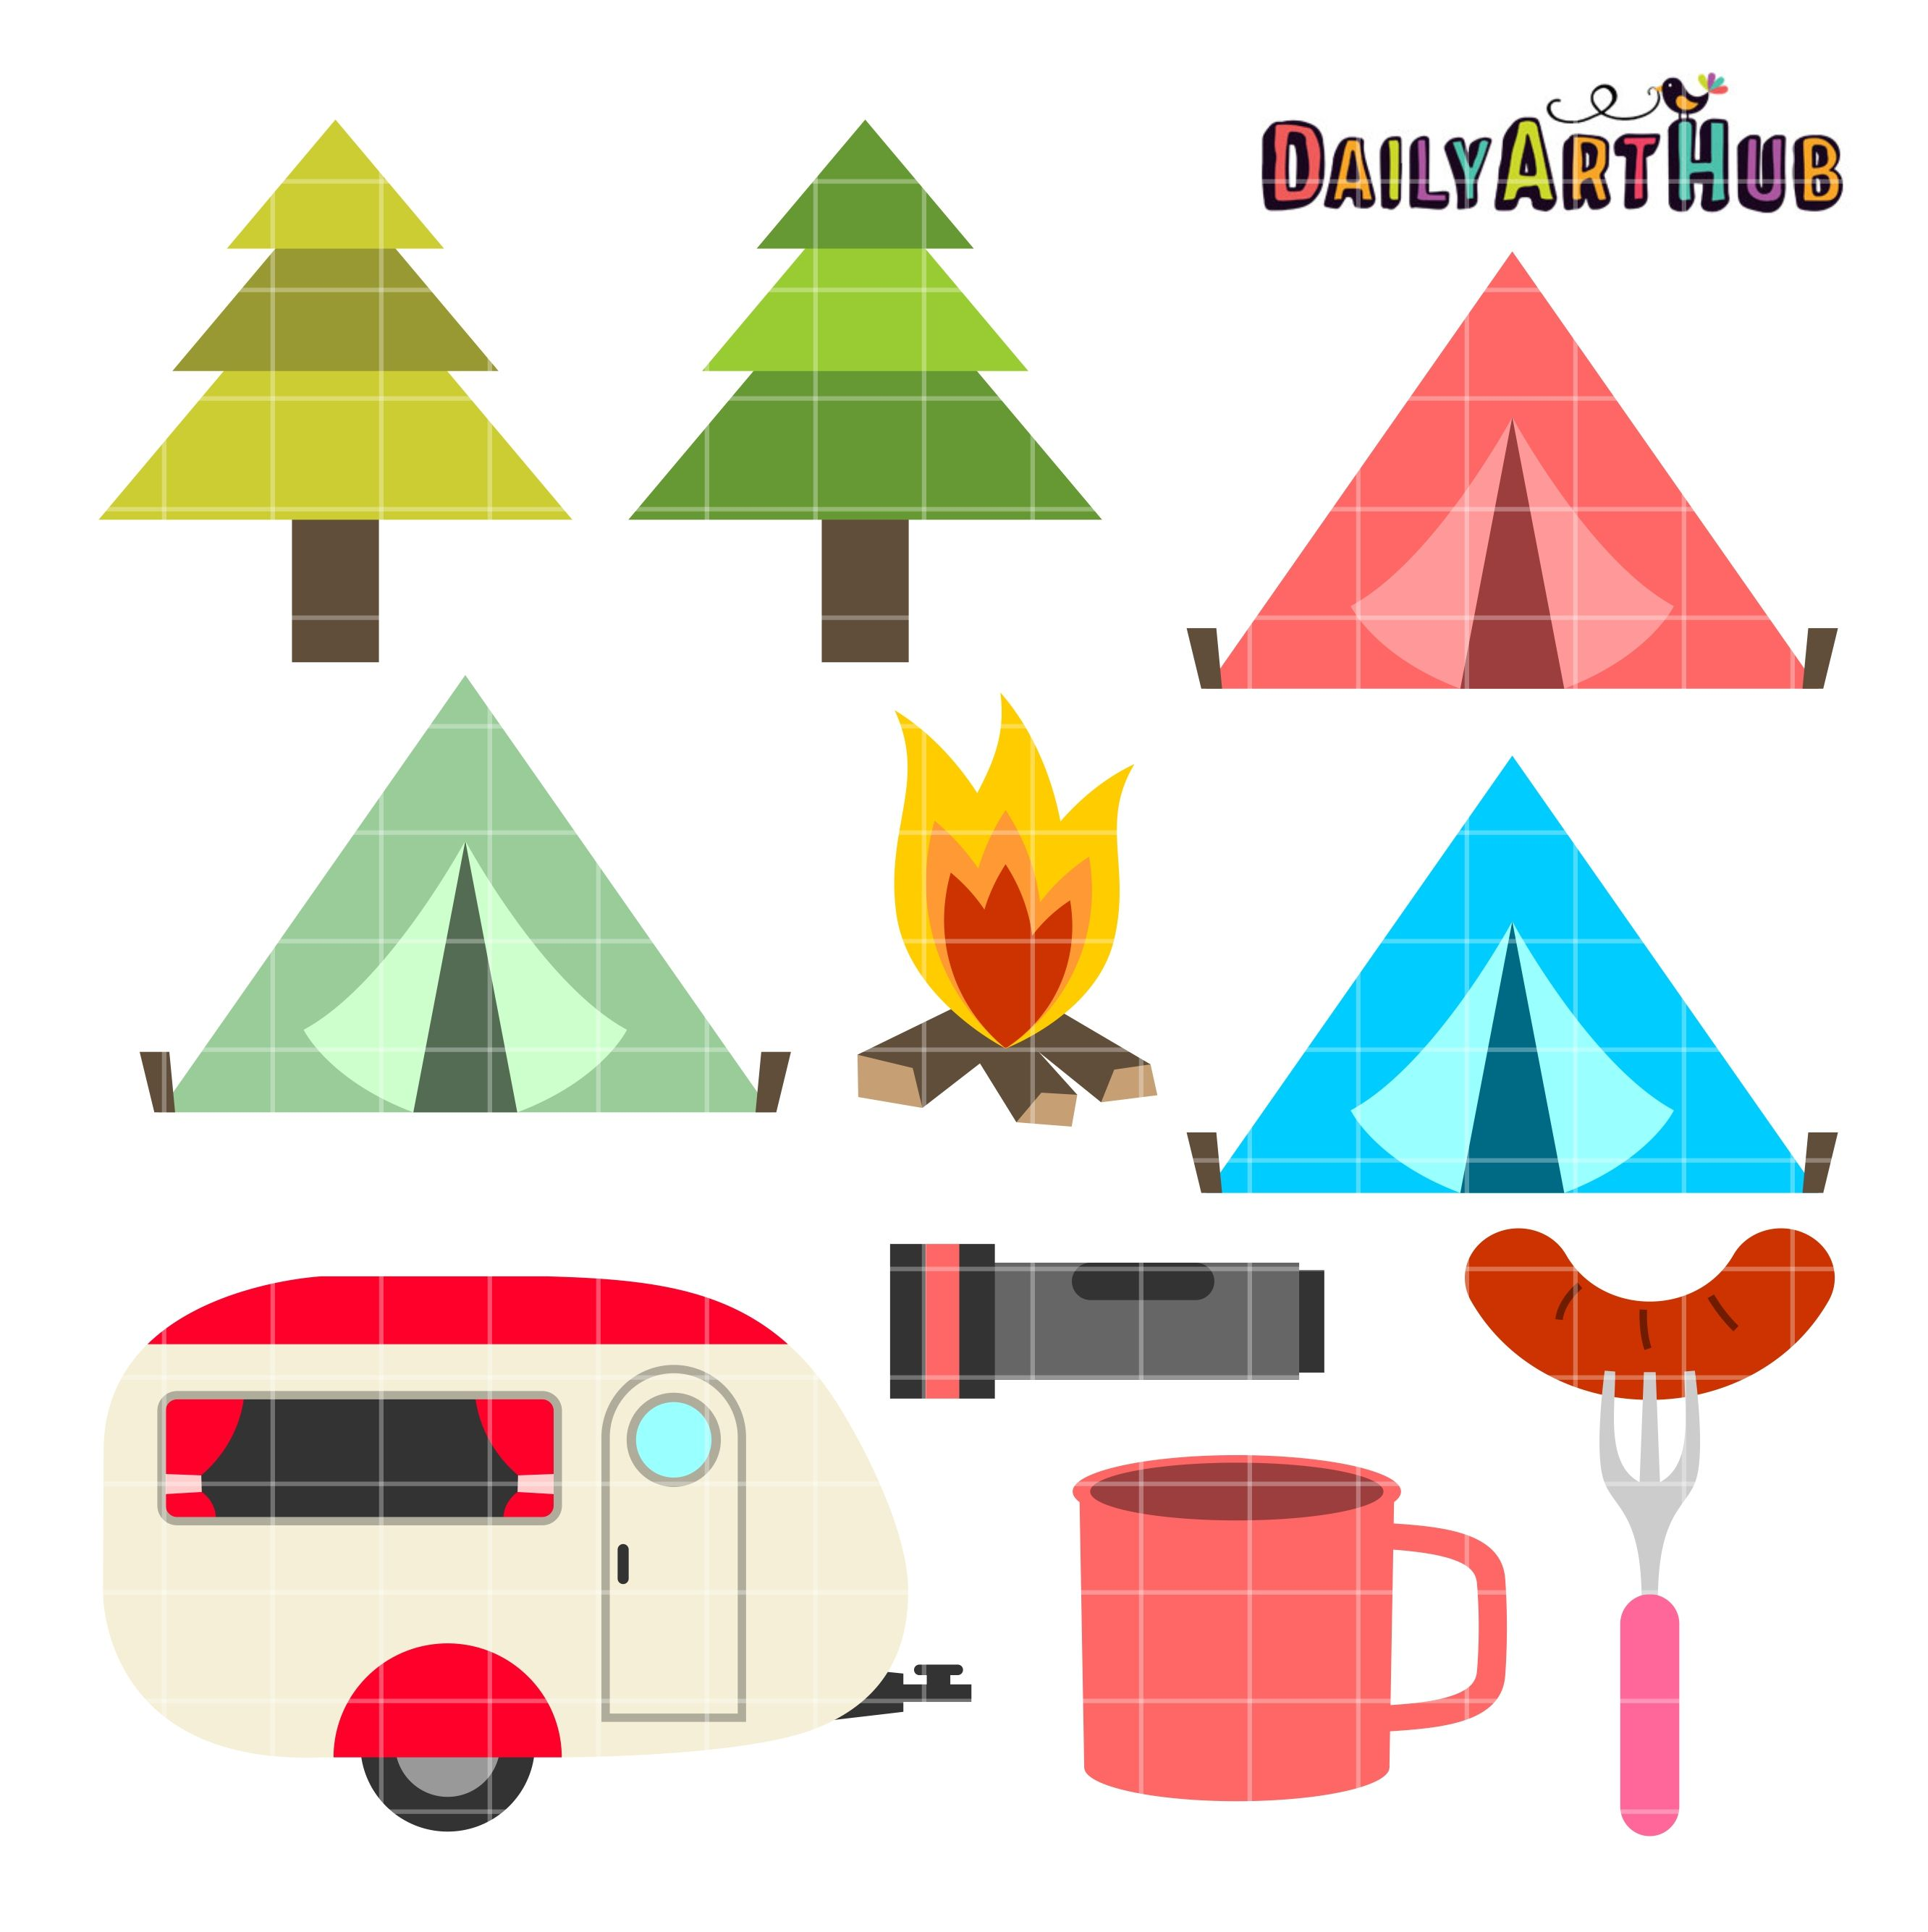 Free camping images clipart svg stock Camping Season Clip Art Set | SVG Cutting Files | Camping clipart ... svg stock